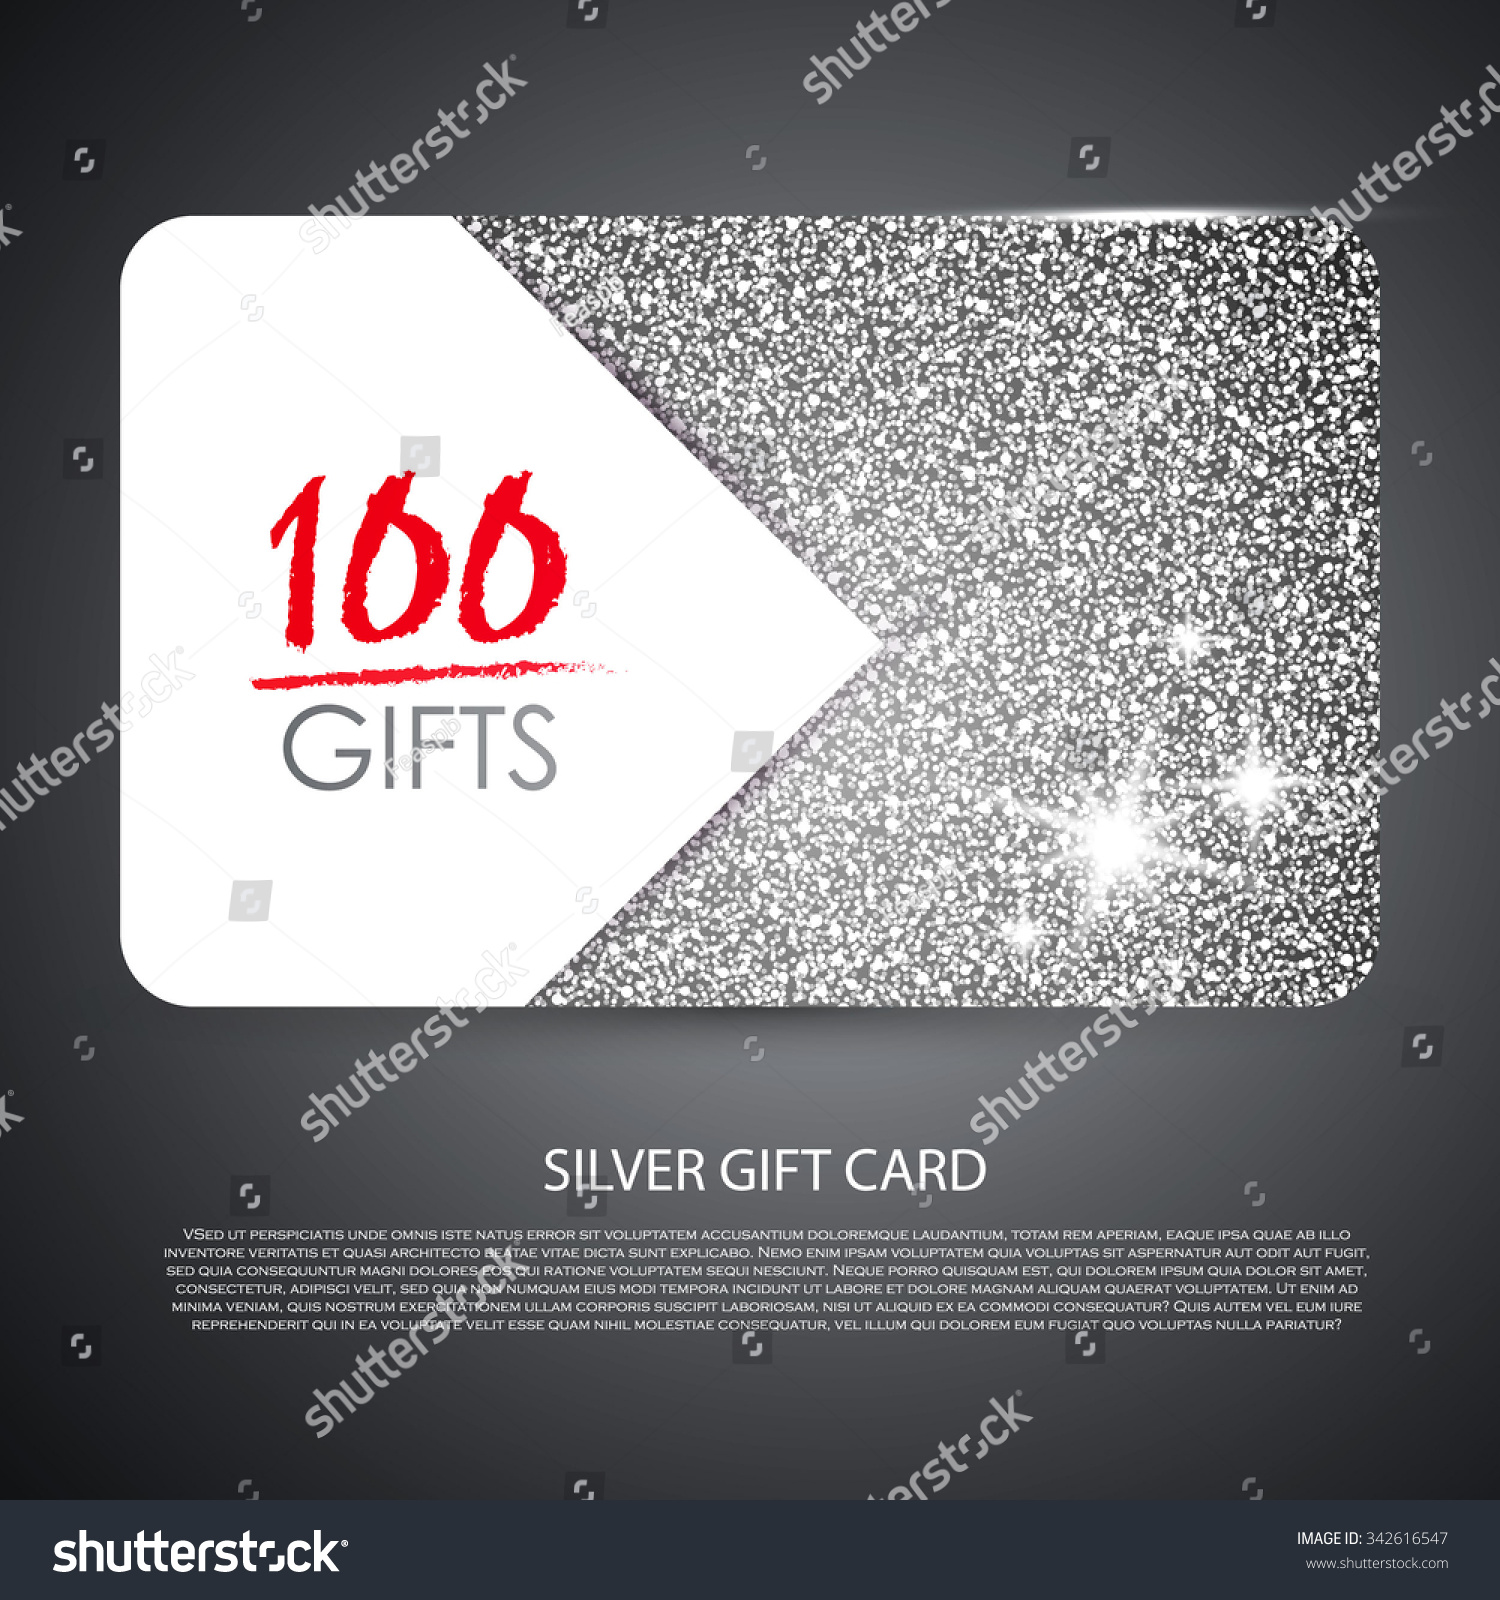 Discount Business Holiday Cards Image collections - Business Card ...